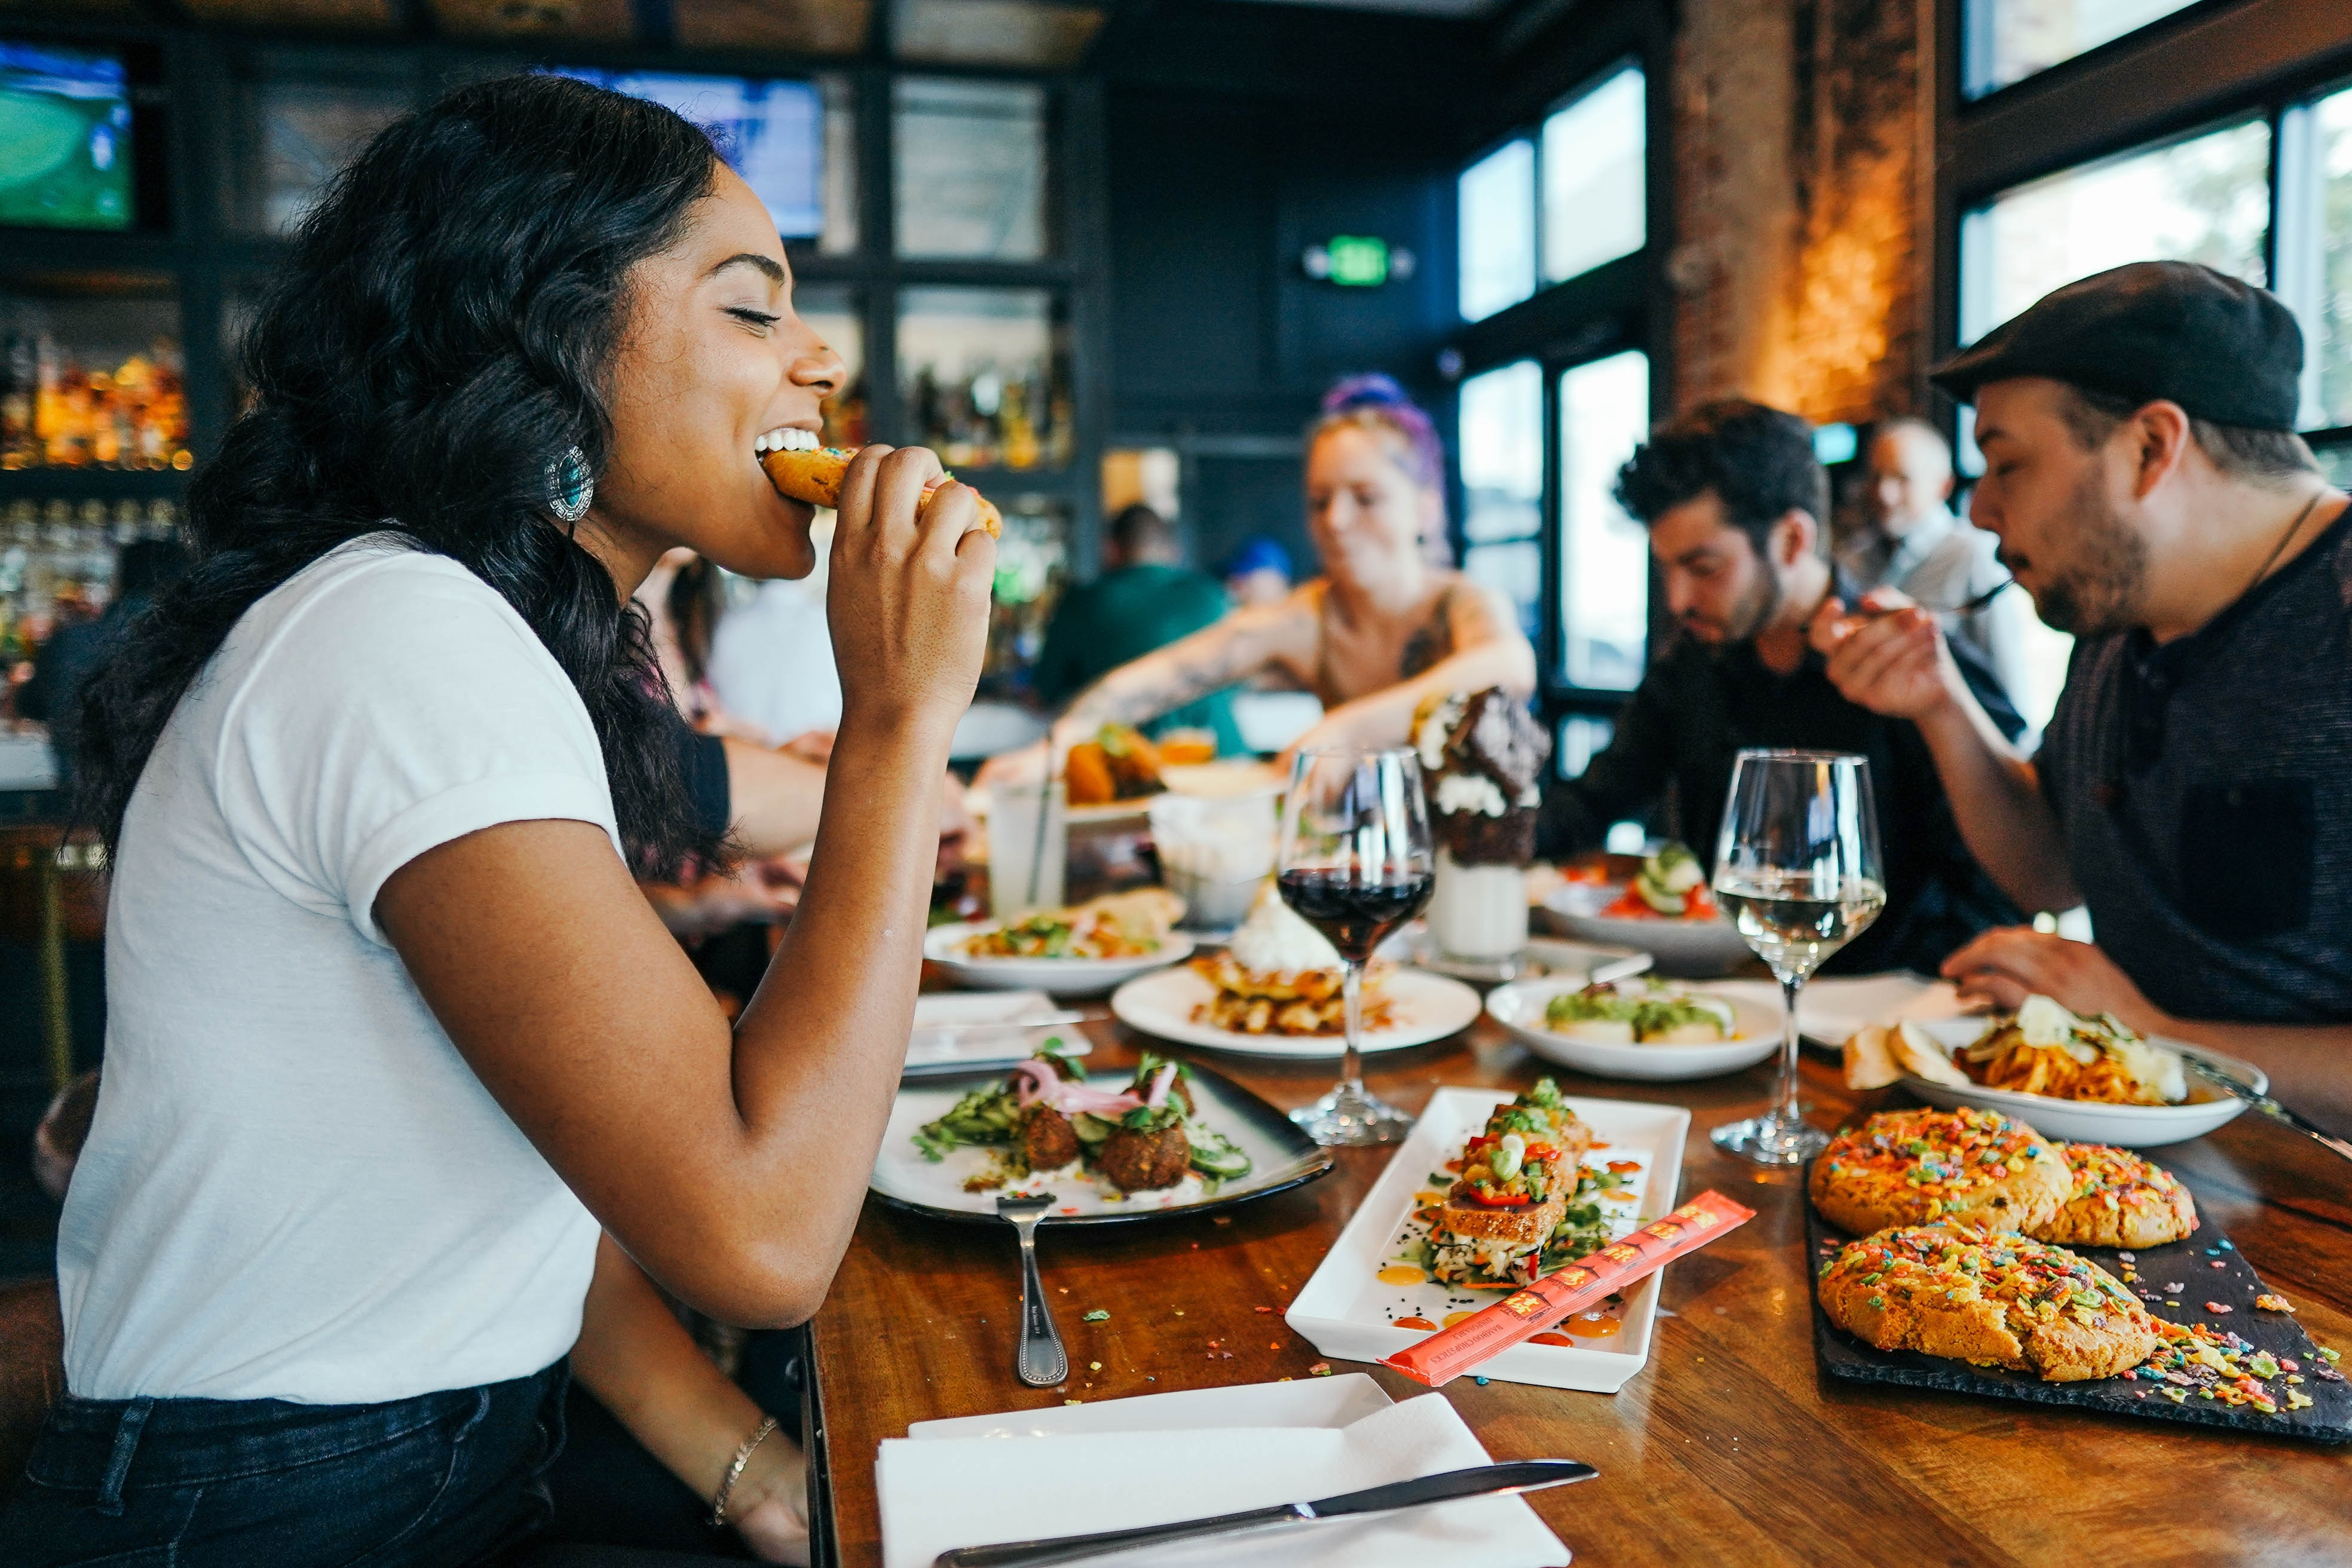 Woman eating healthy foods at restaurant with friends